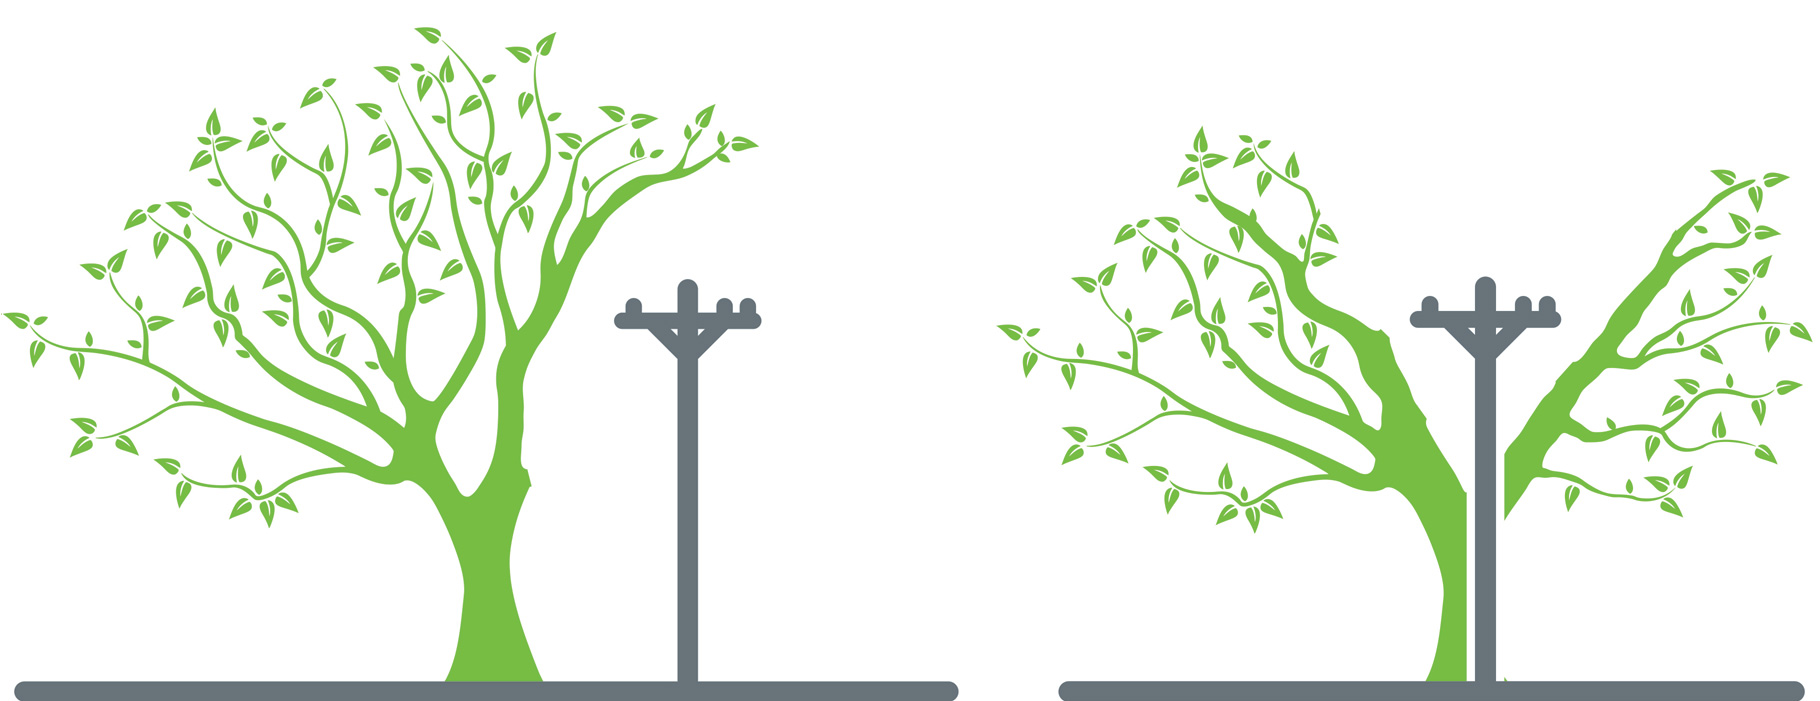 Illustration of proper tree planting under Distribution powerlines.